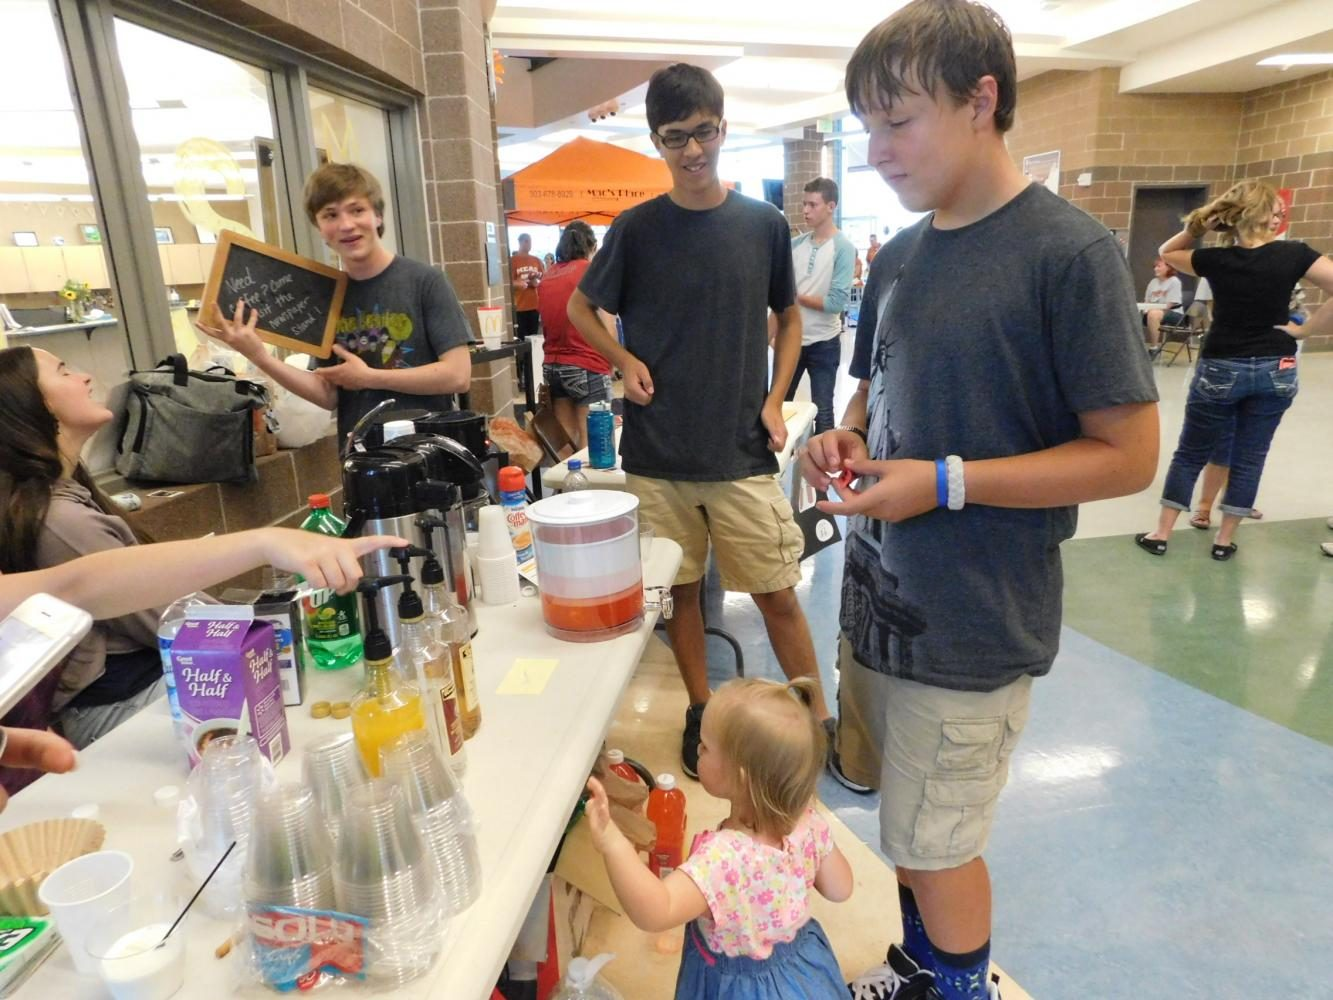 Students from The Mav gather around their fundraising stand at the Mead HS Round Up on August 18.